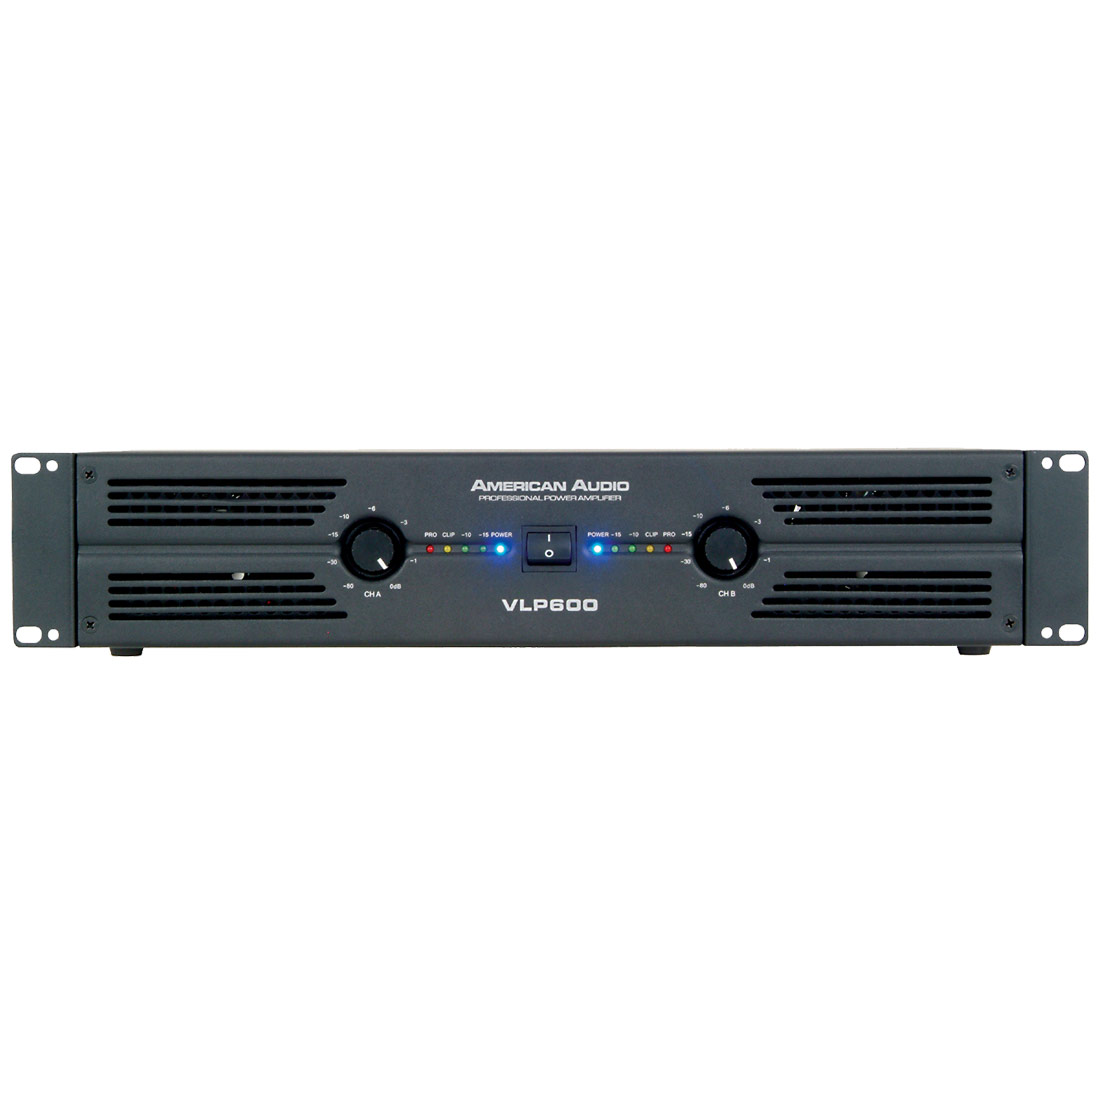 VLP600 power amplifier